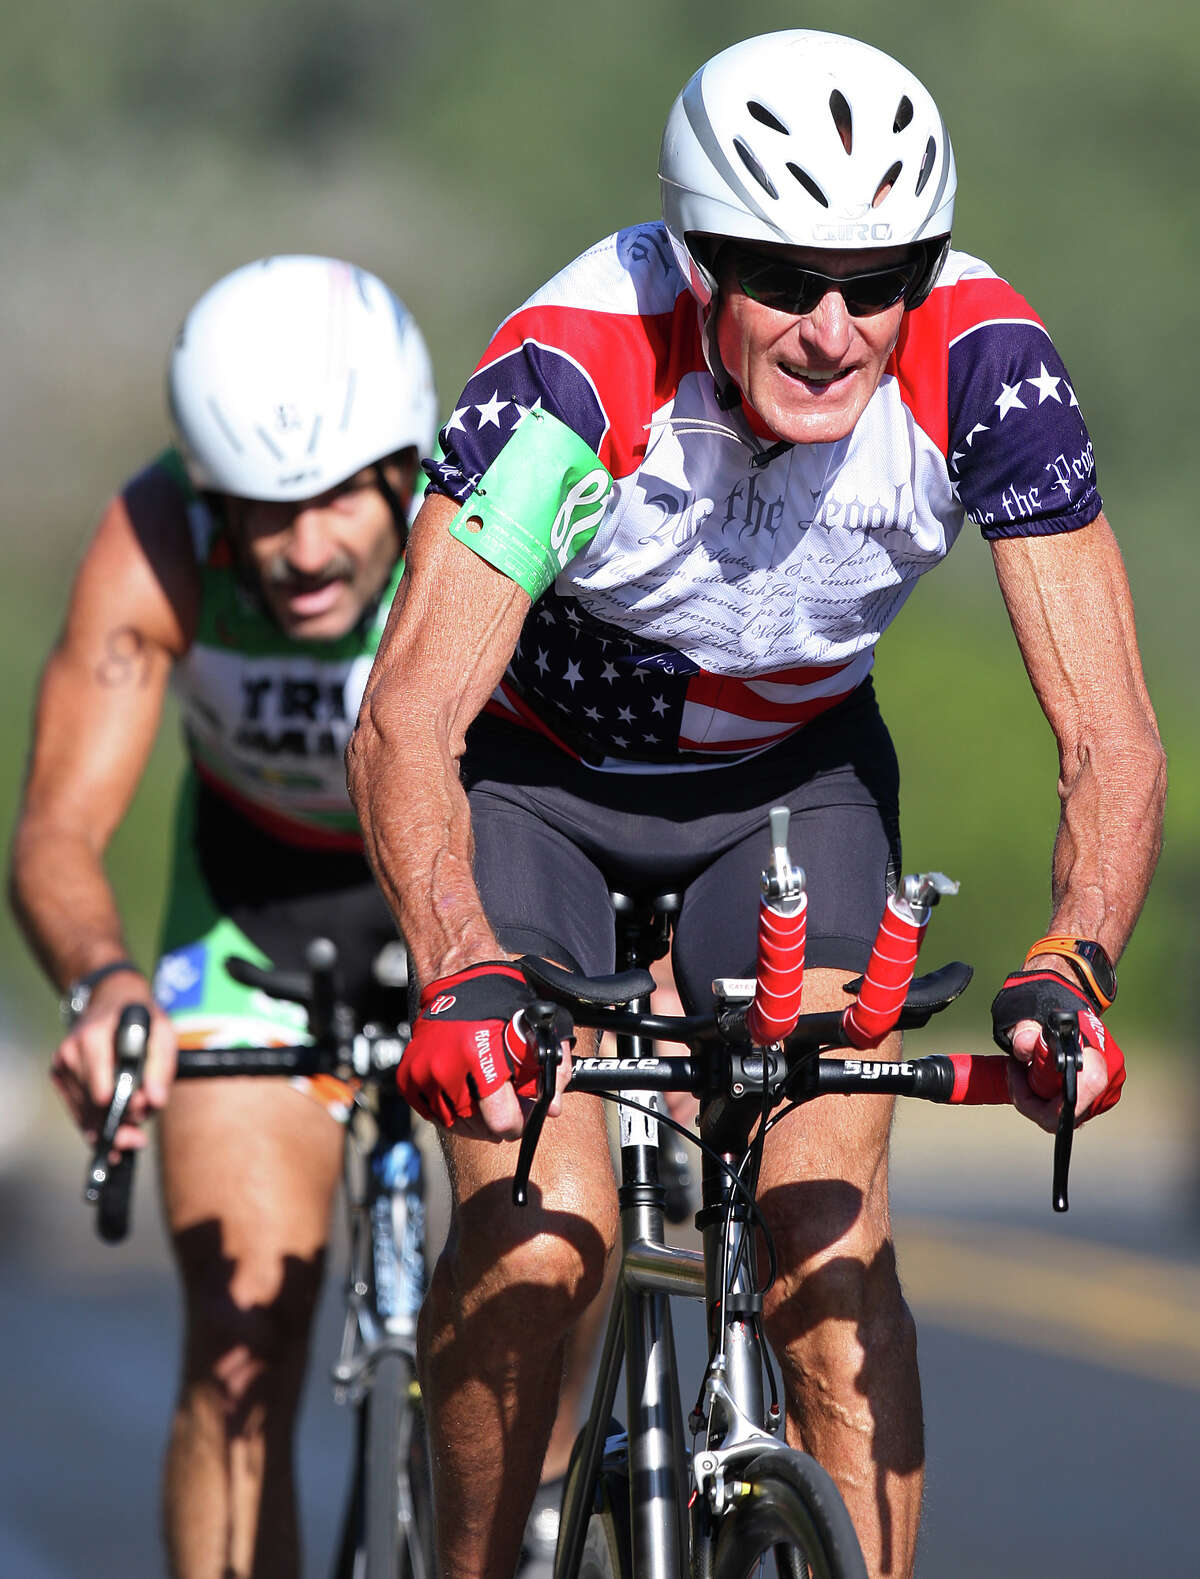 Dr. Darryl Cuda, left, and Orb Greenwald compete in the Aero Men 22+mph team trials of the Tour de Gruene, Sunday, Nov. 4, 2012. The Two-Person Team Time Trial was the last event of the two-day time trials. Teams competed in a 26.6-mile course along River Road near Gruene and along FM 306.